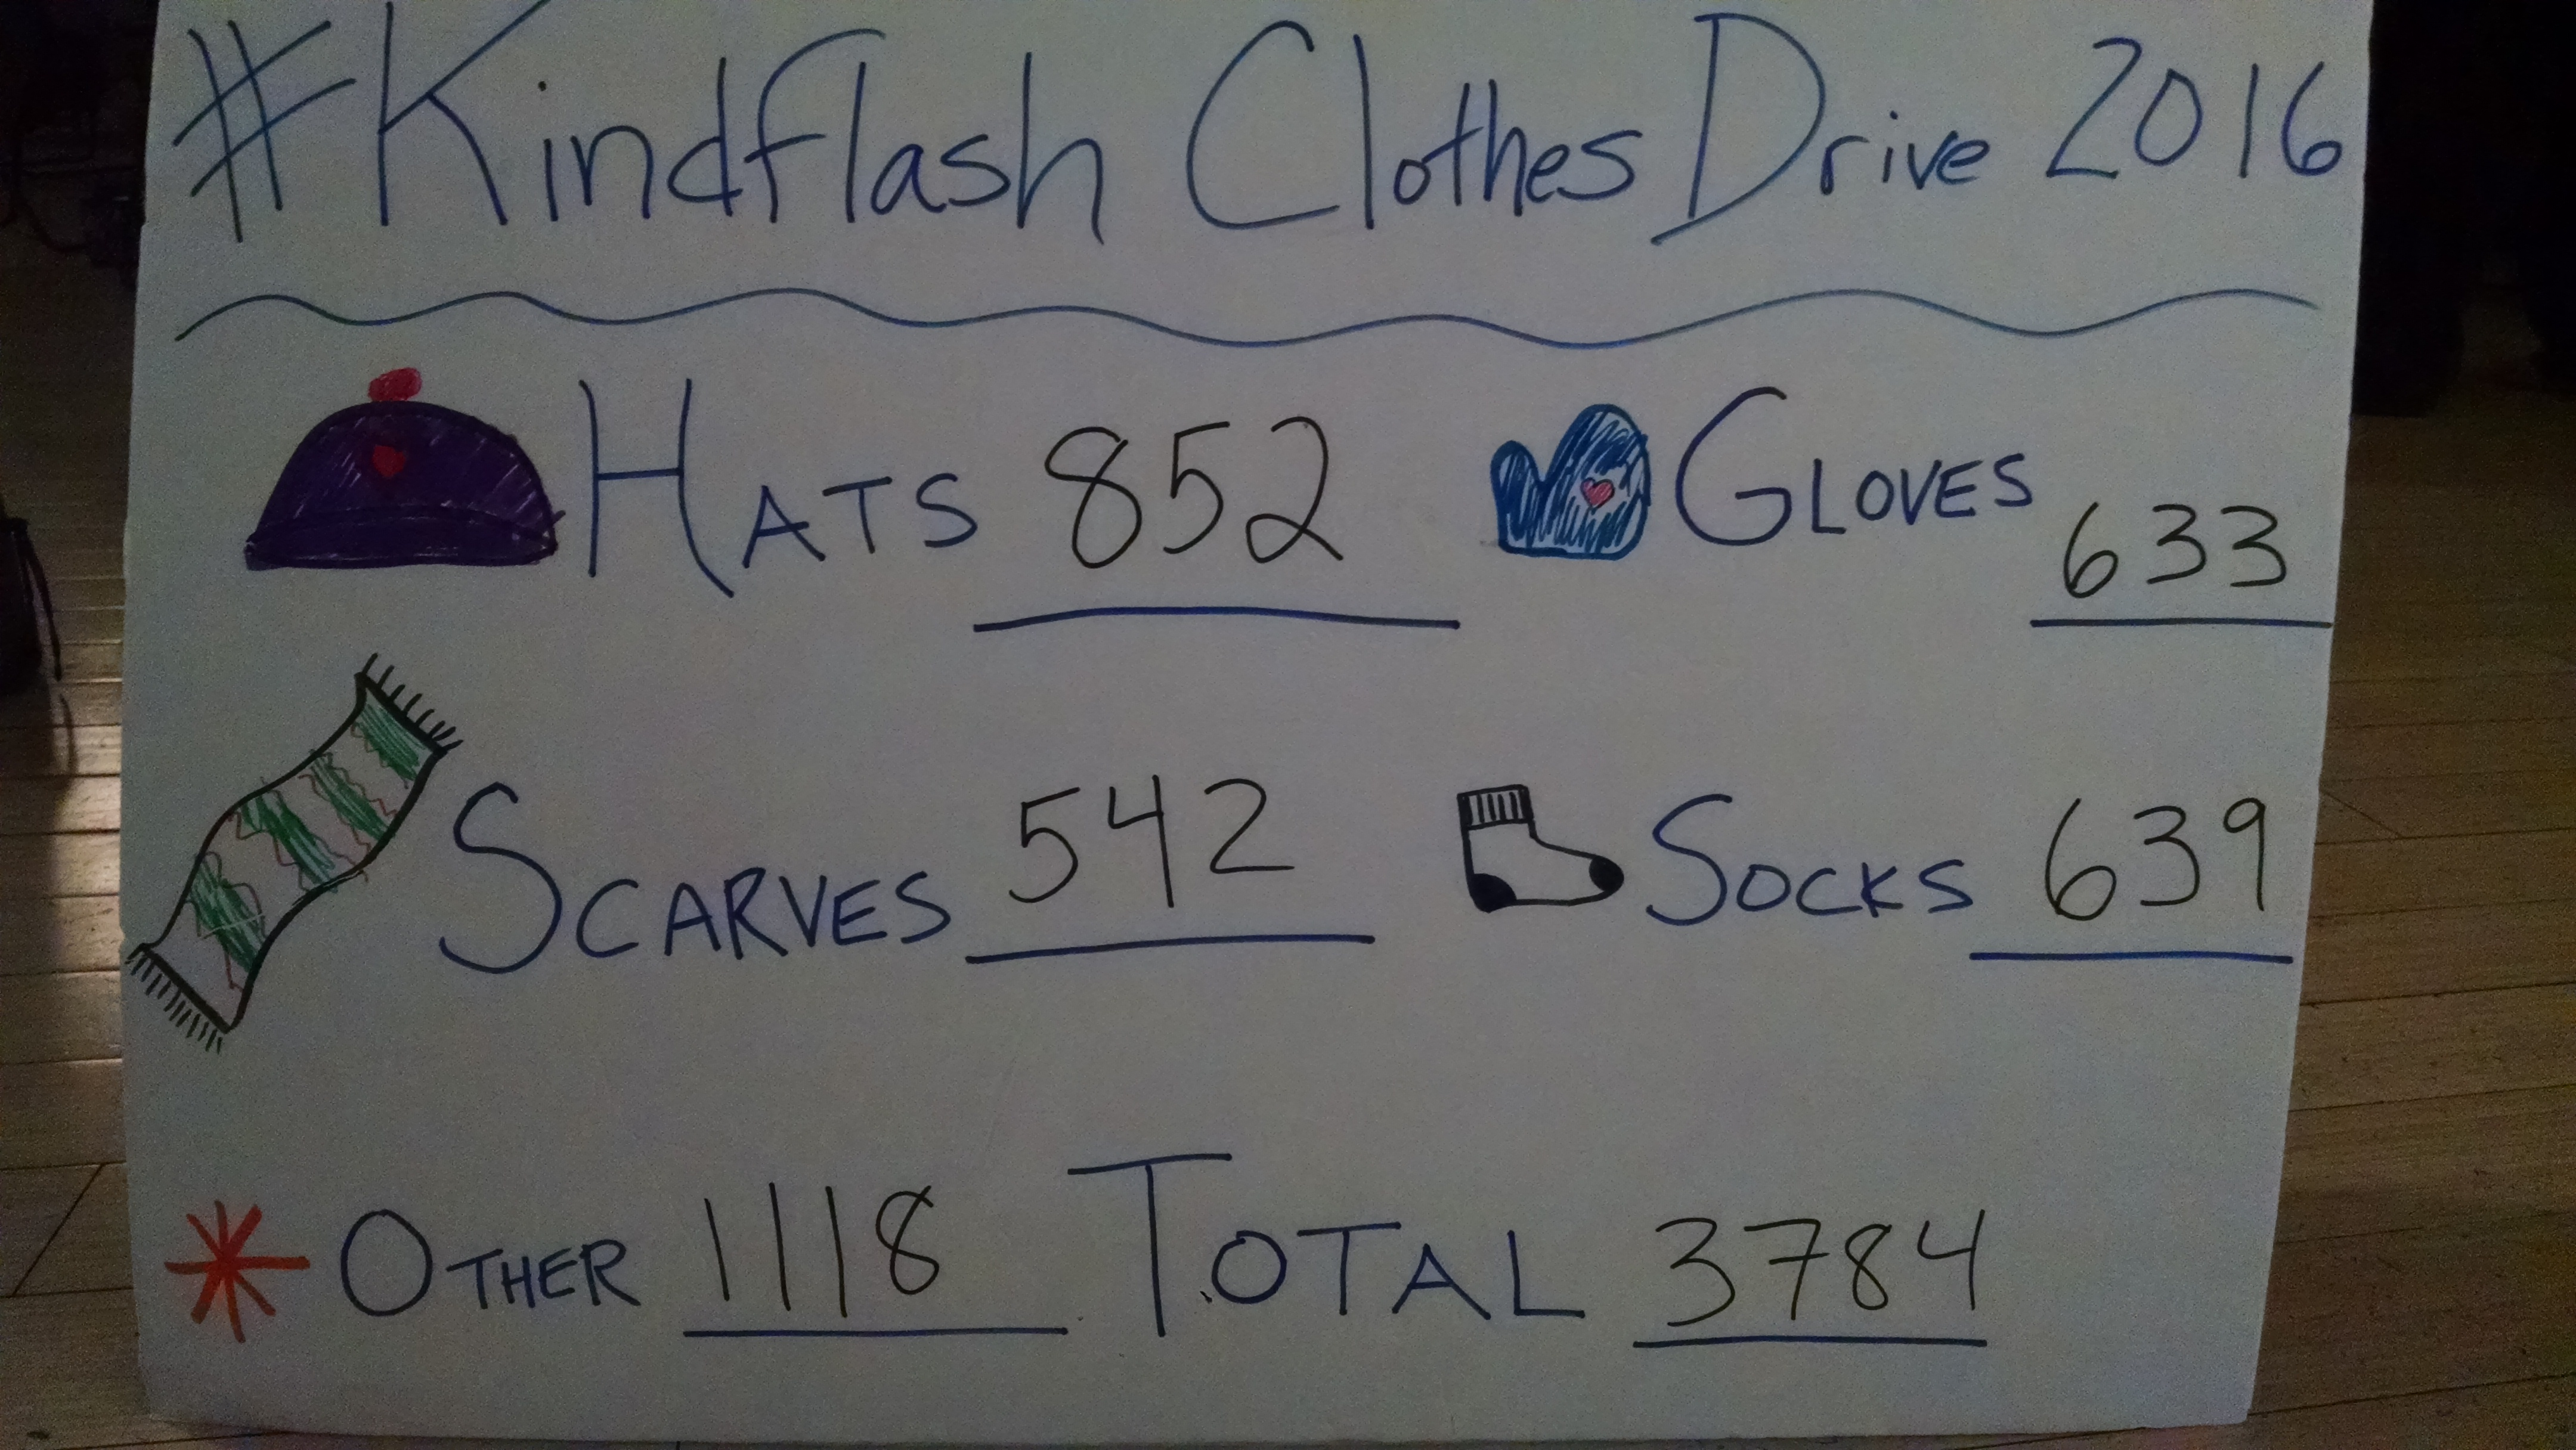 #kindflash Cincinnati is organizing a hat and coat drive for the homeless